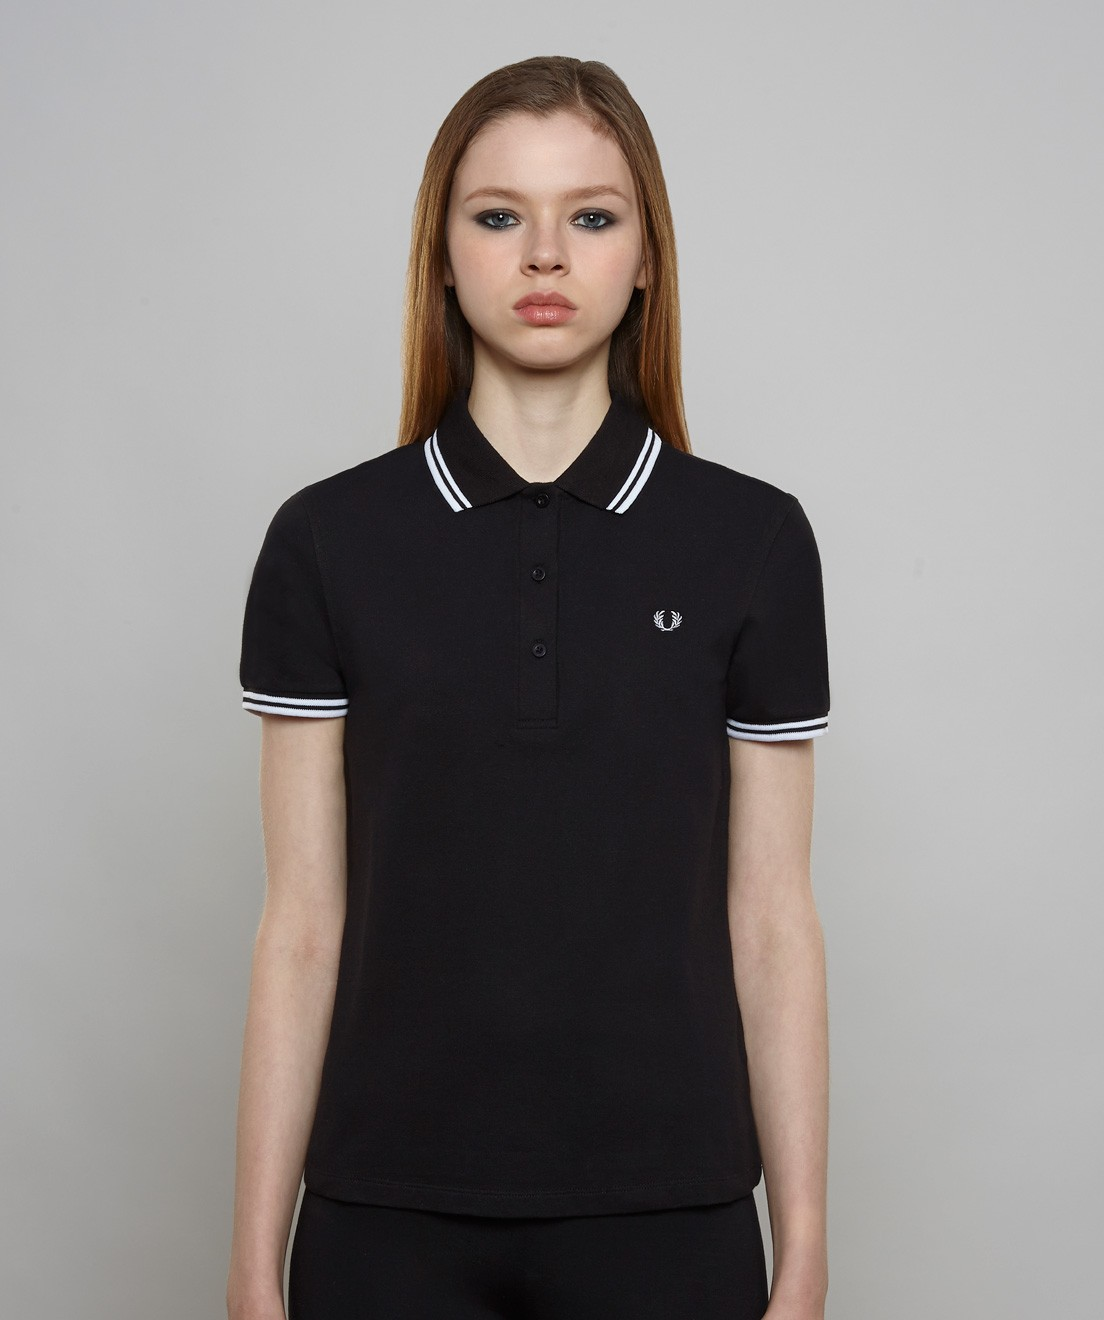 Fred perry dress styles